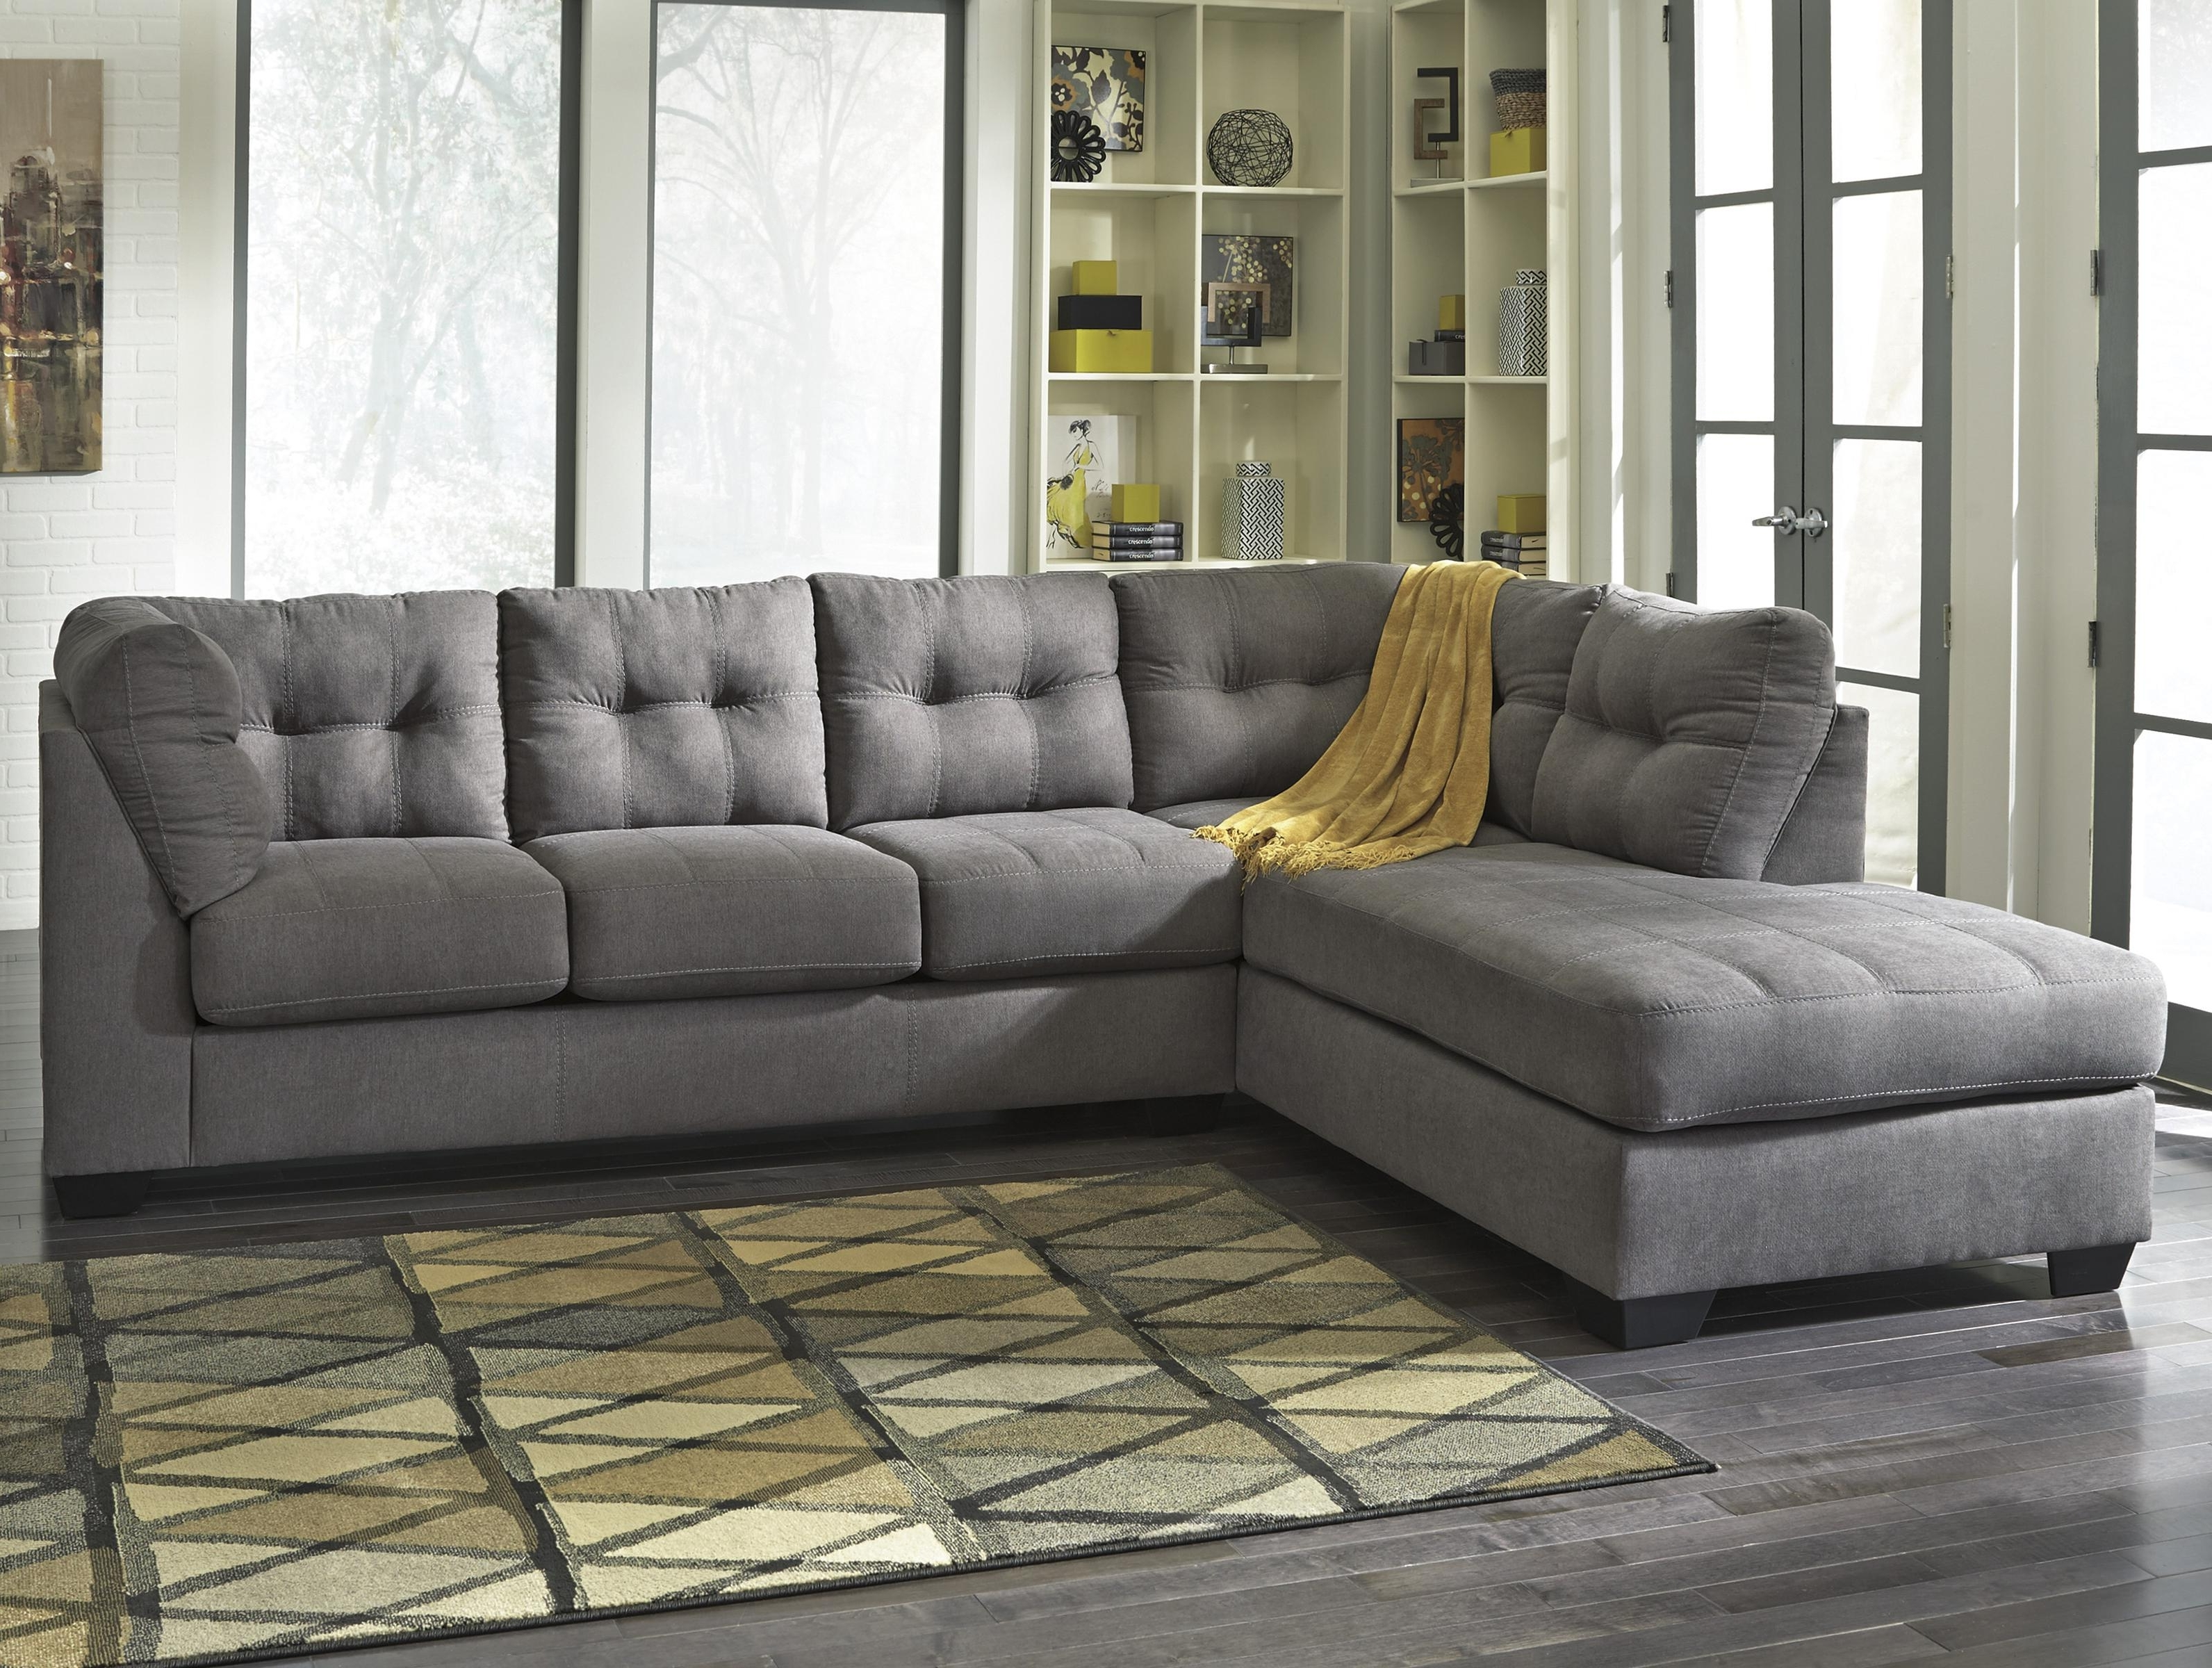 Most Current Benchcraftashley Maier – Charcoal 2 Piece Sectional With Left In Memphis Tn Sectional Sofas (View 14 of 20)